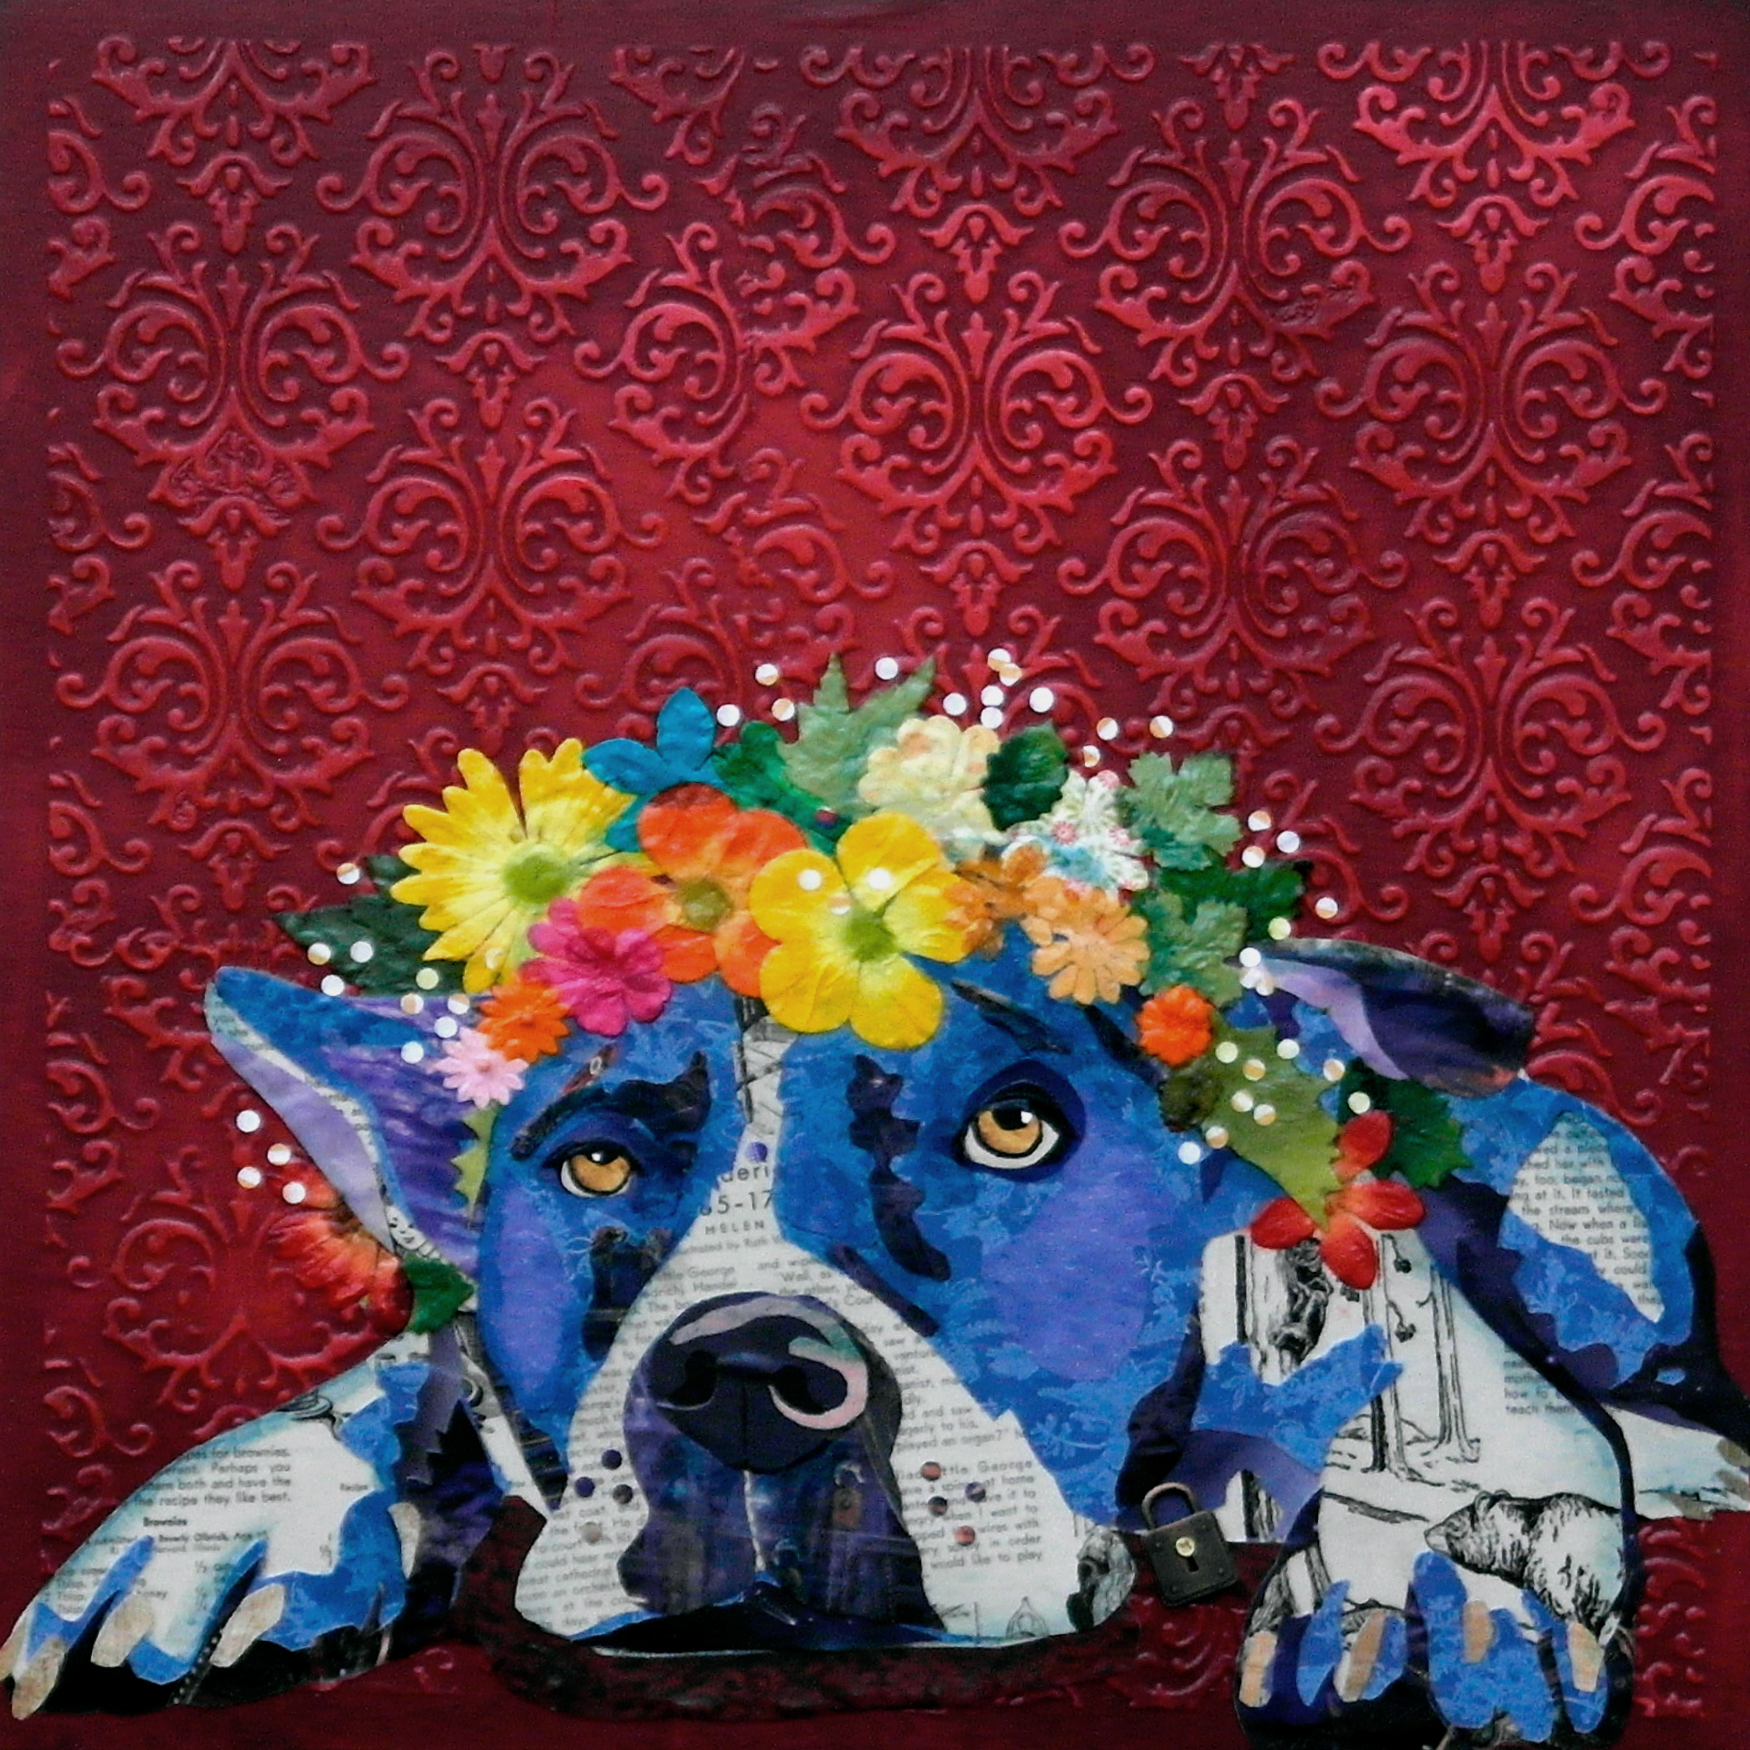 Dog with Flower Crown #6.jpg